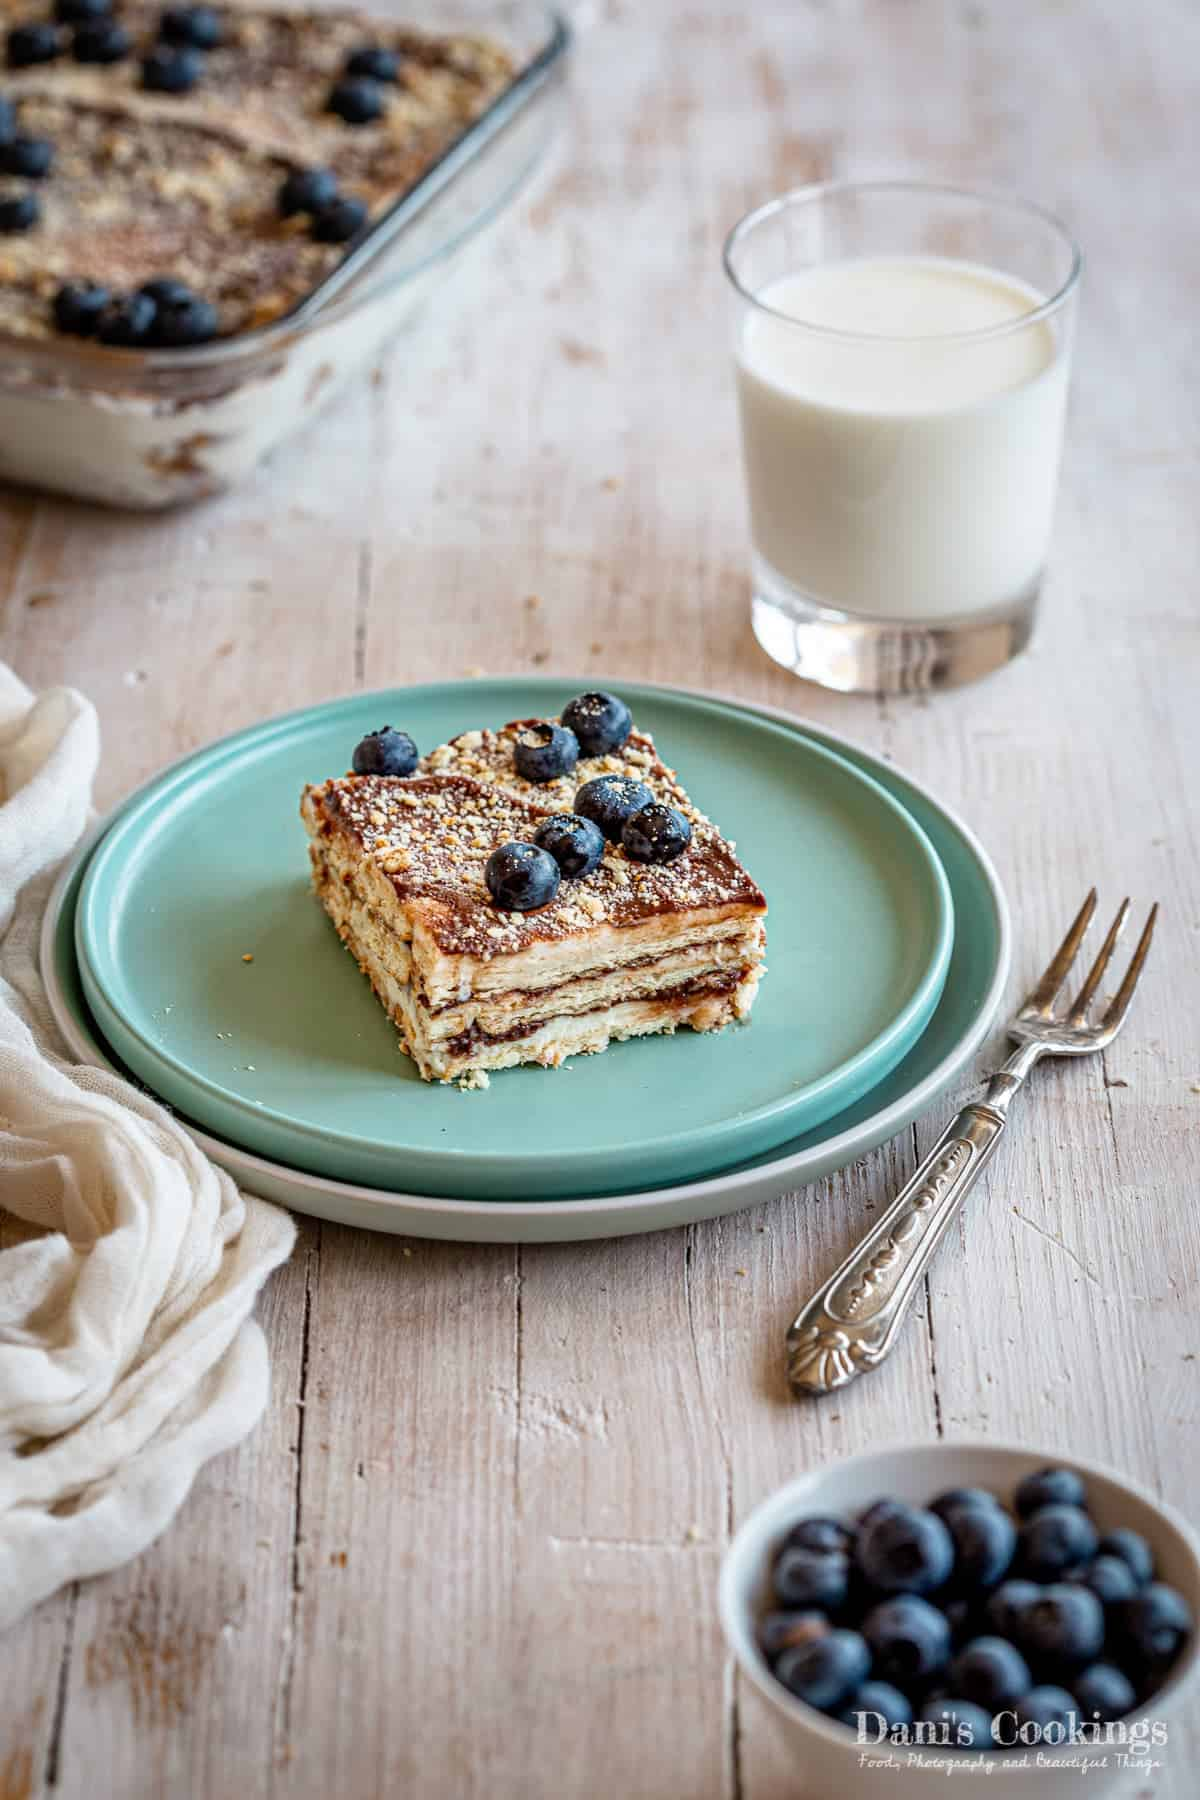 a slice of cake with blueberries and milk aside